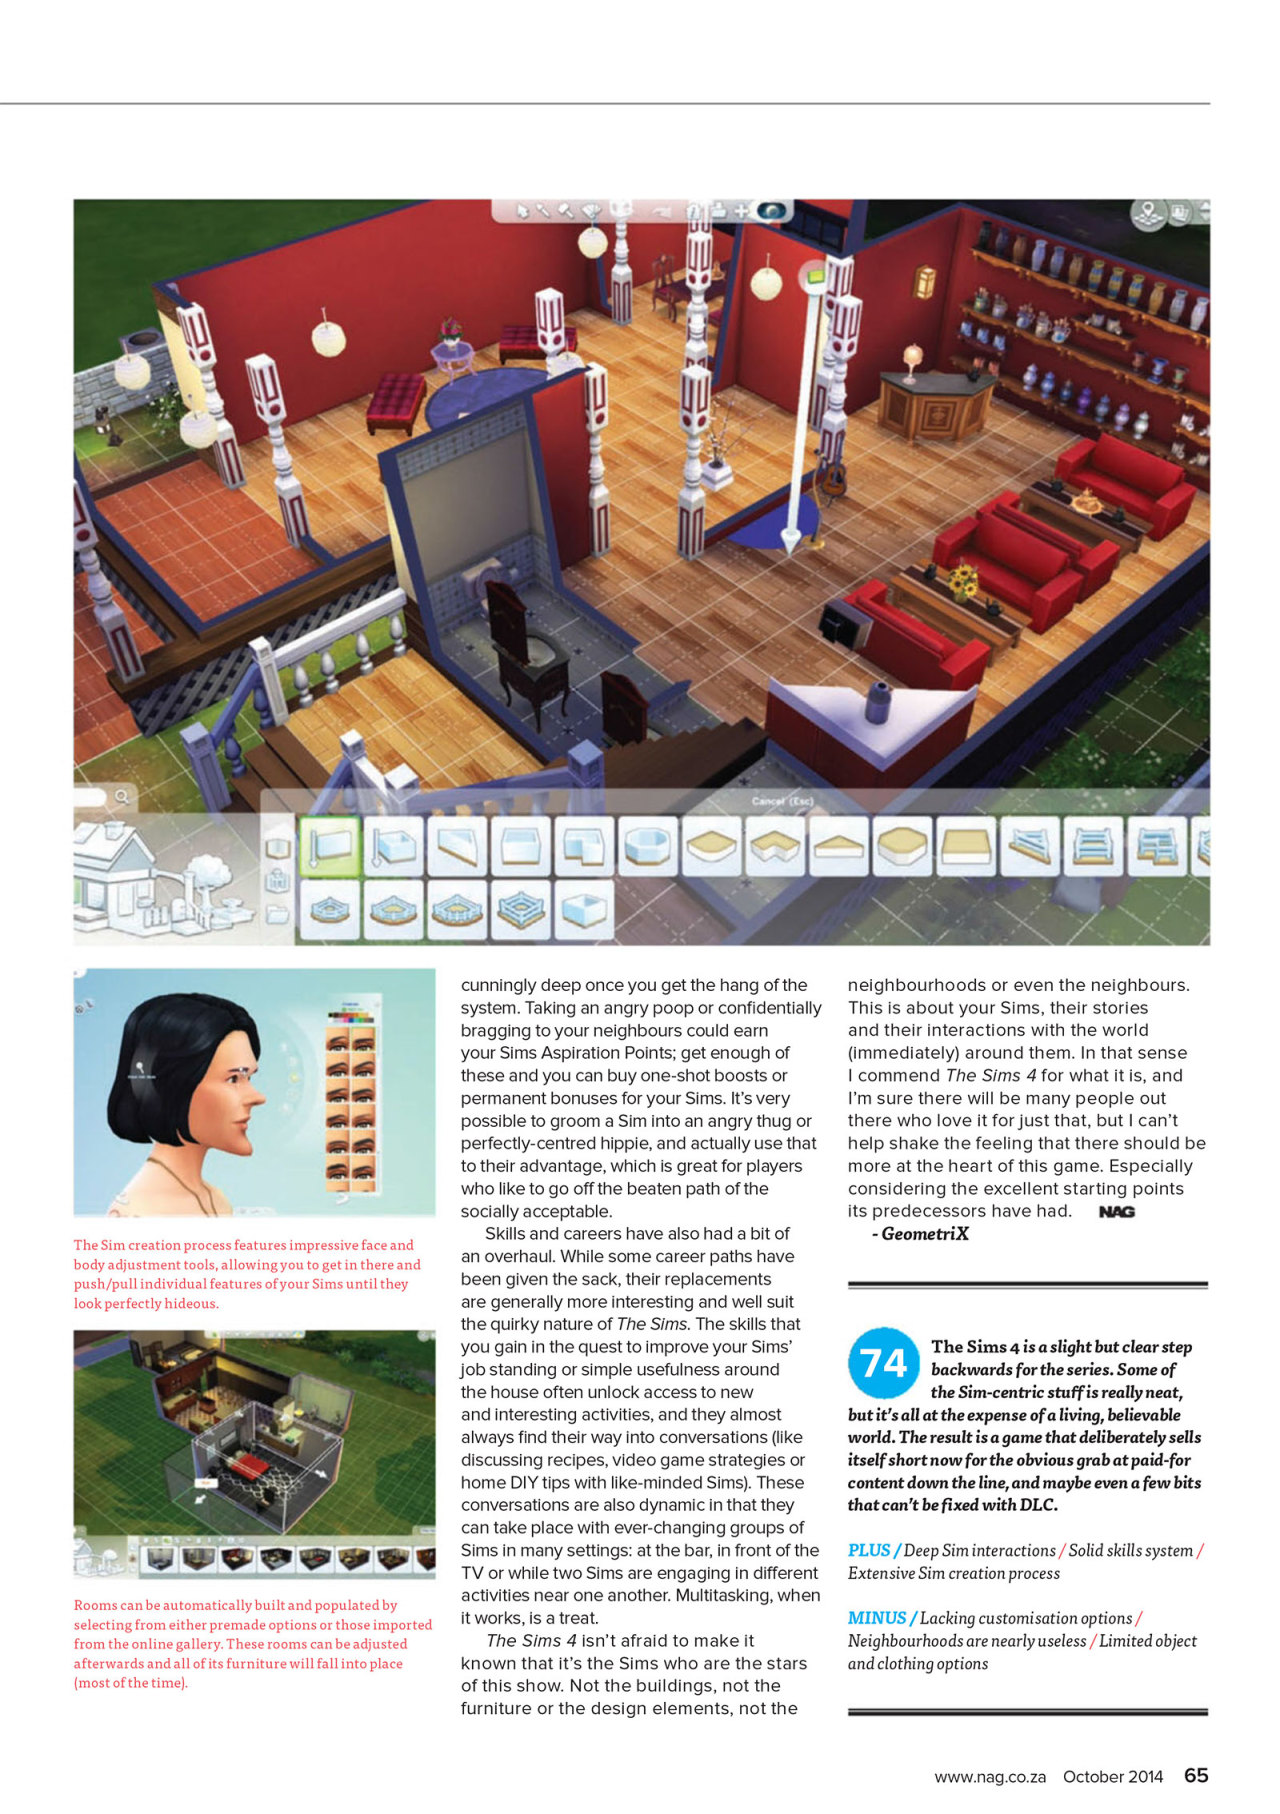 Honeywell S Sims 4 News Blog The Sims 4 Review Nag Rating 74 Cover